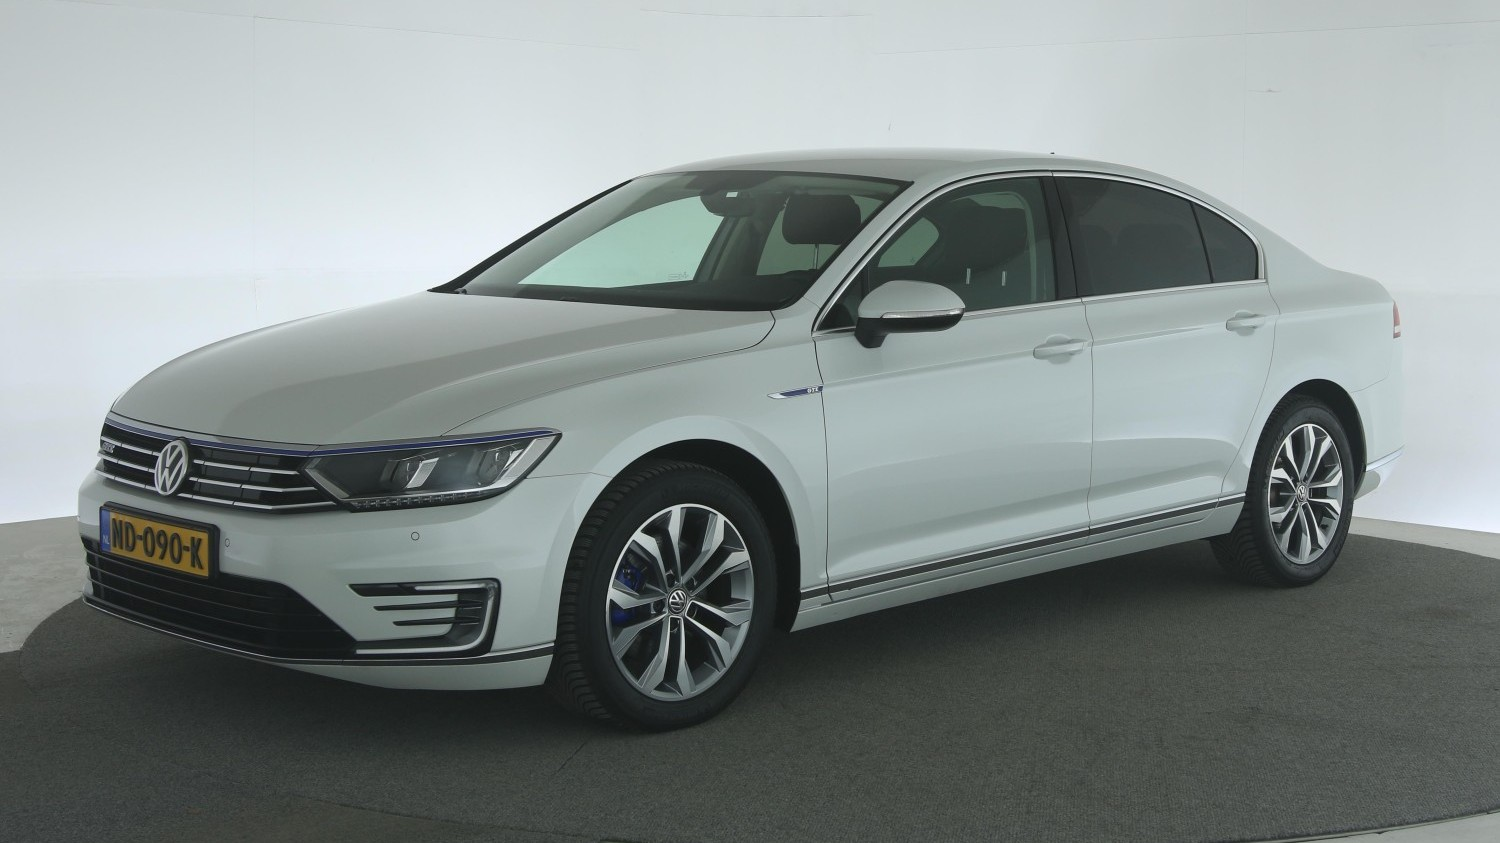 Volkswagen Passat Sedan 2016 ND-090-K 1